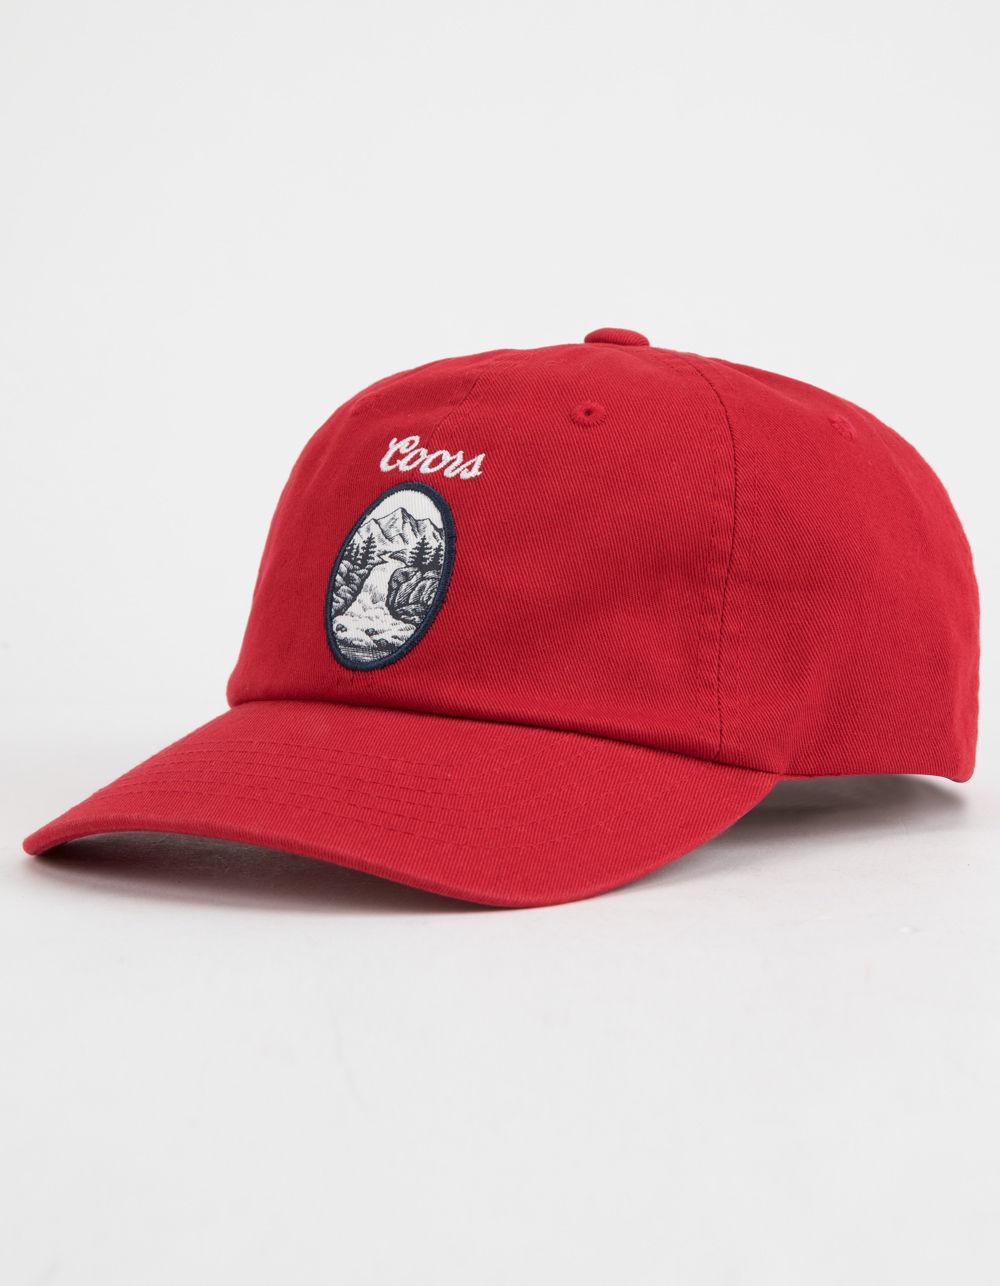 25f8bda30bc72c Brixton X Coors Filtered Red Mens Strapback Hat in Red for Men - Lyst